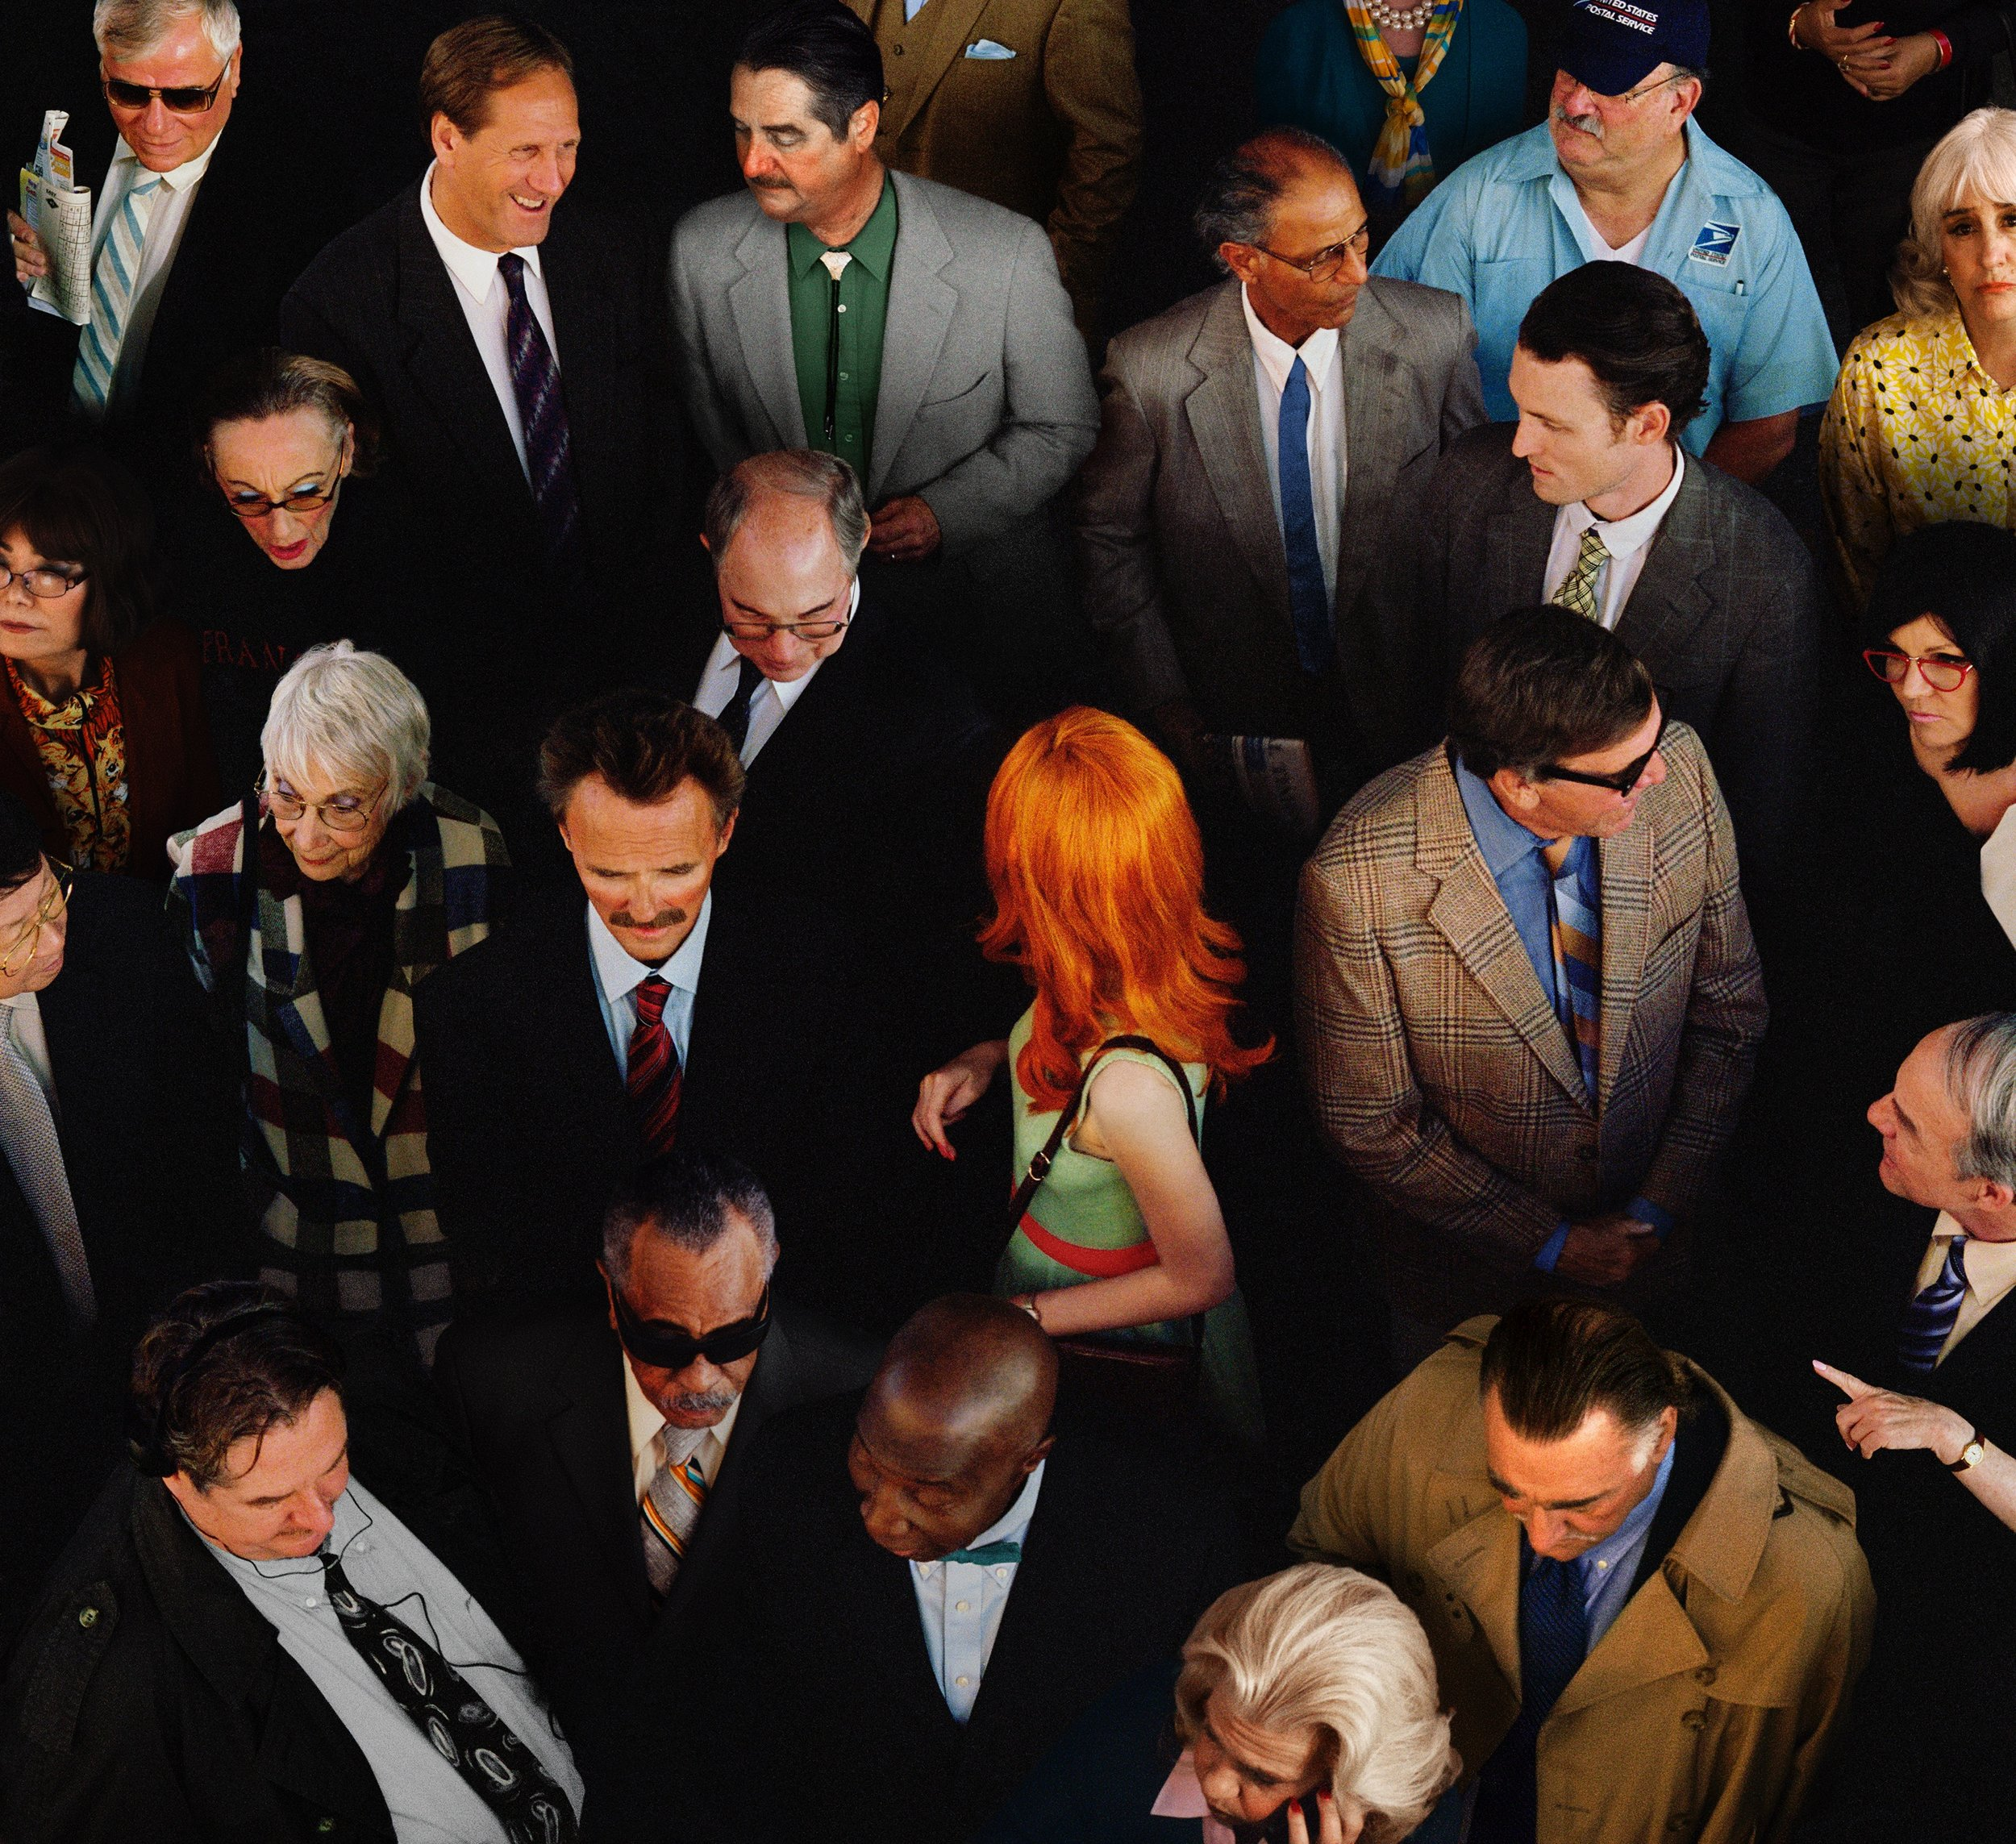 Alex Prager, Hollywood and Vine, 2014